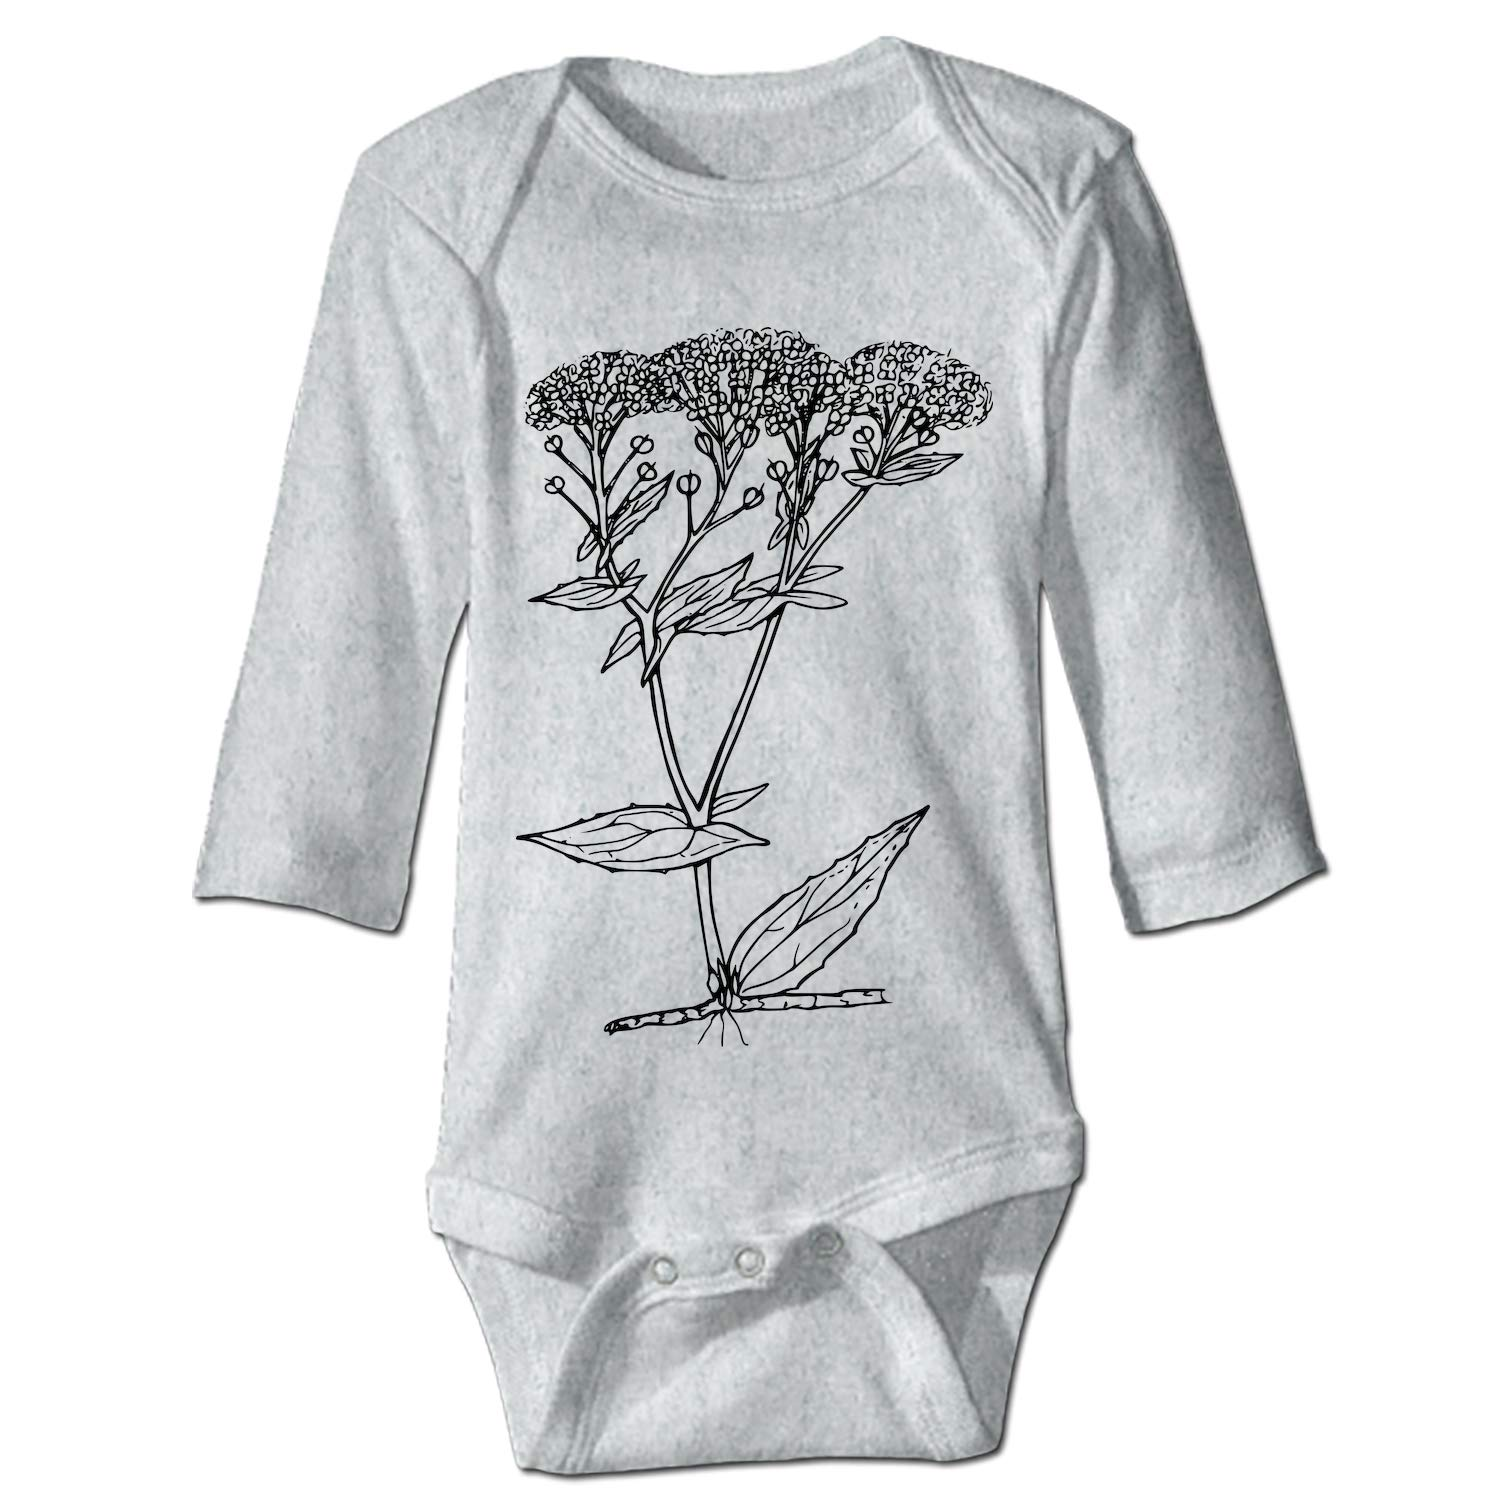 Flower New Parents Top Baby Bodysuit